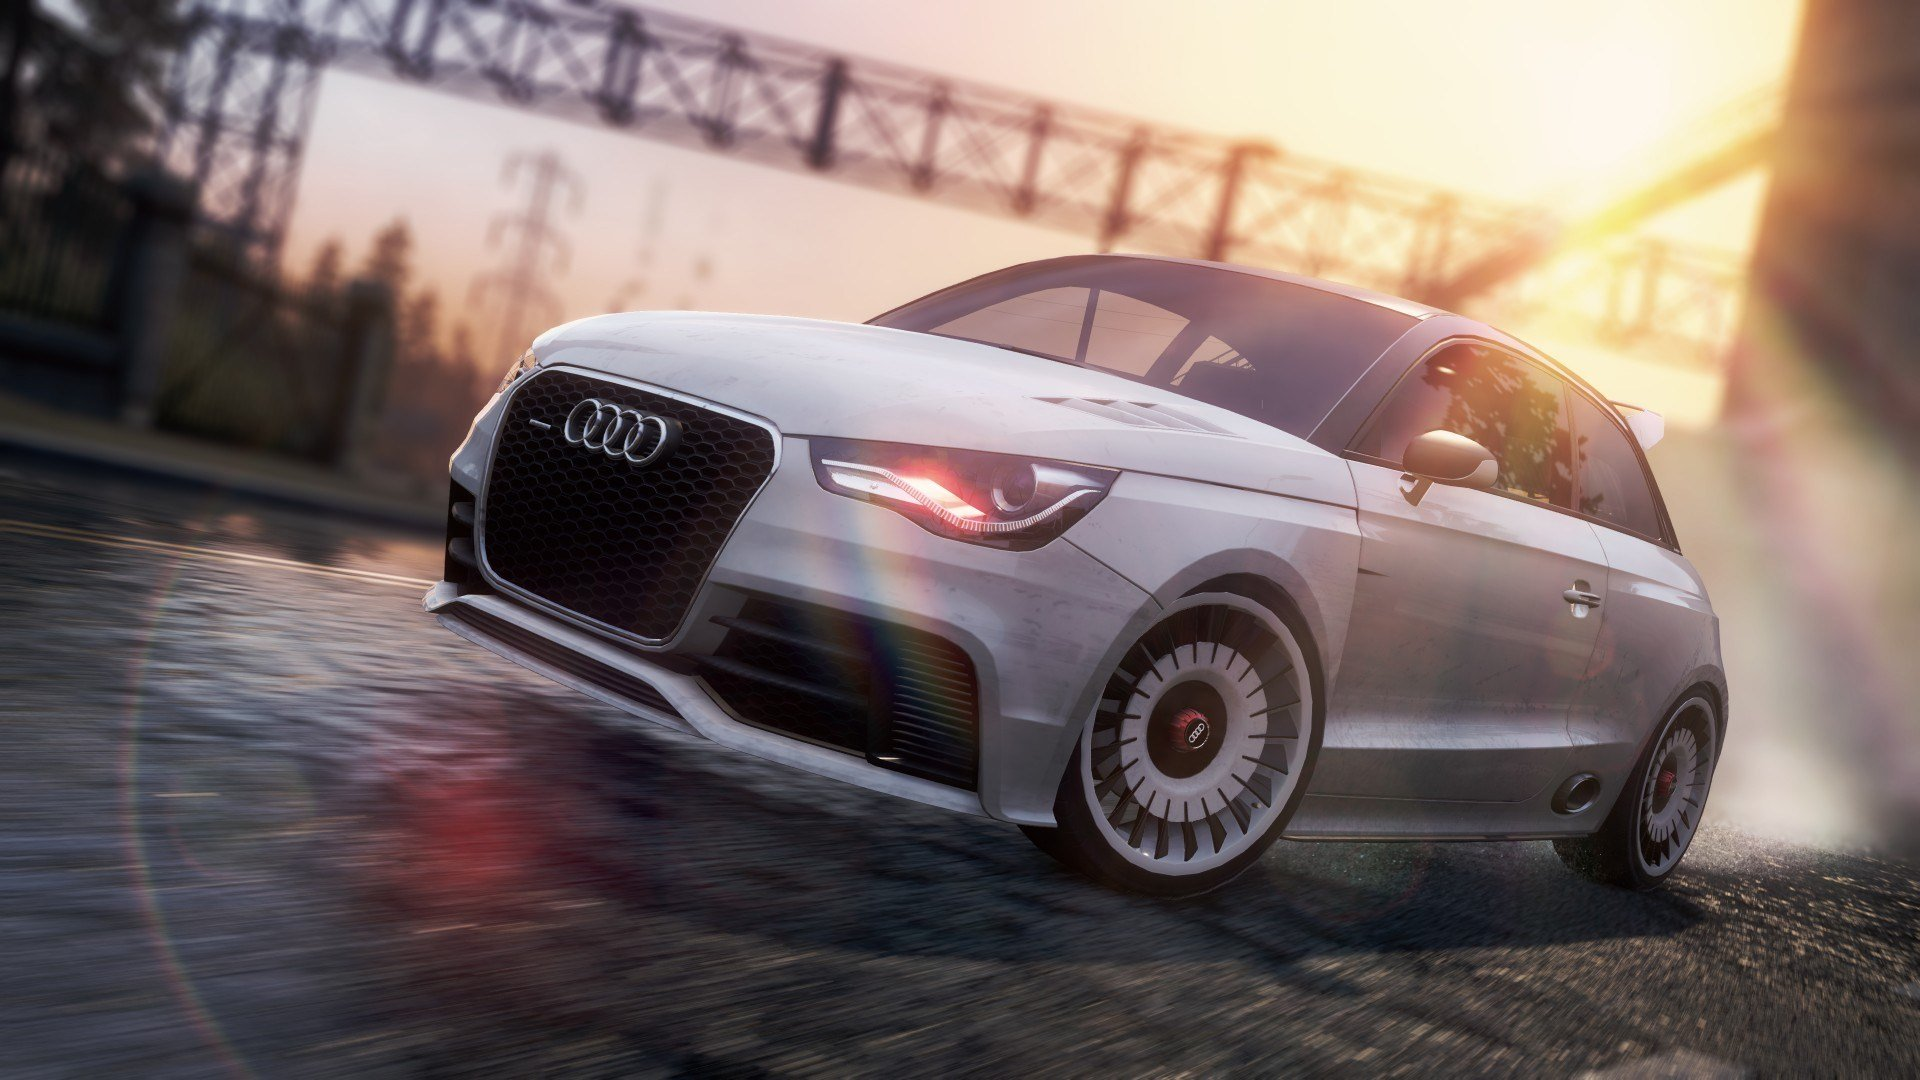 Latest Video Games Cars Audi A1 Audi A1 Clubsport Quattro Need Free Download